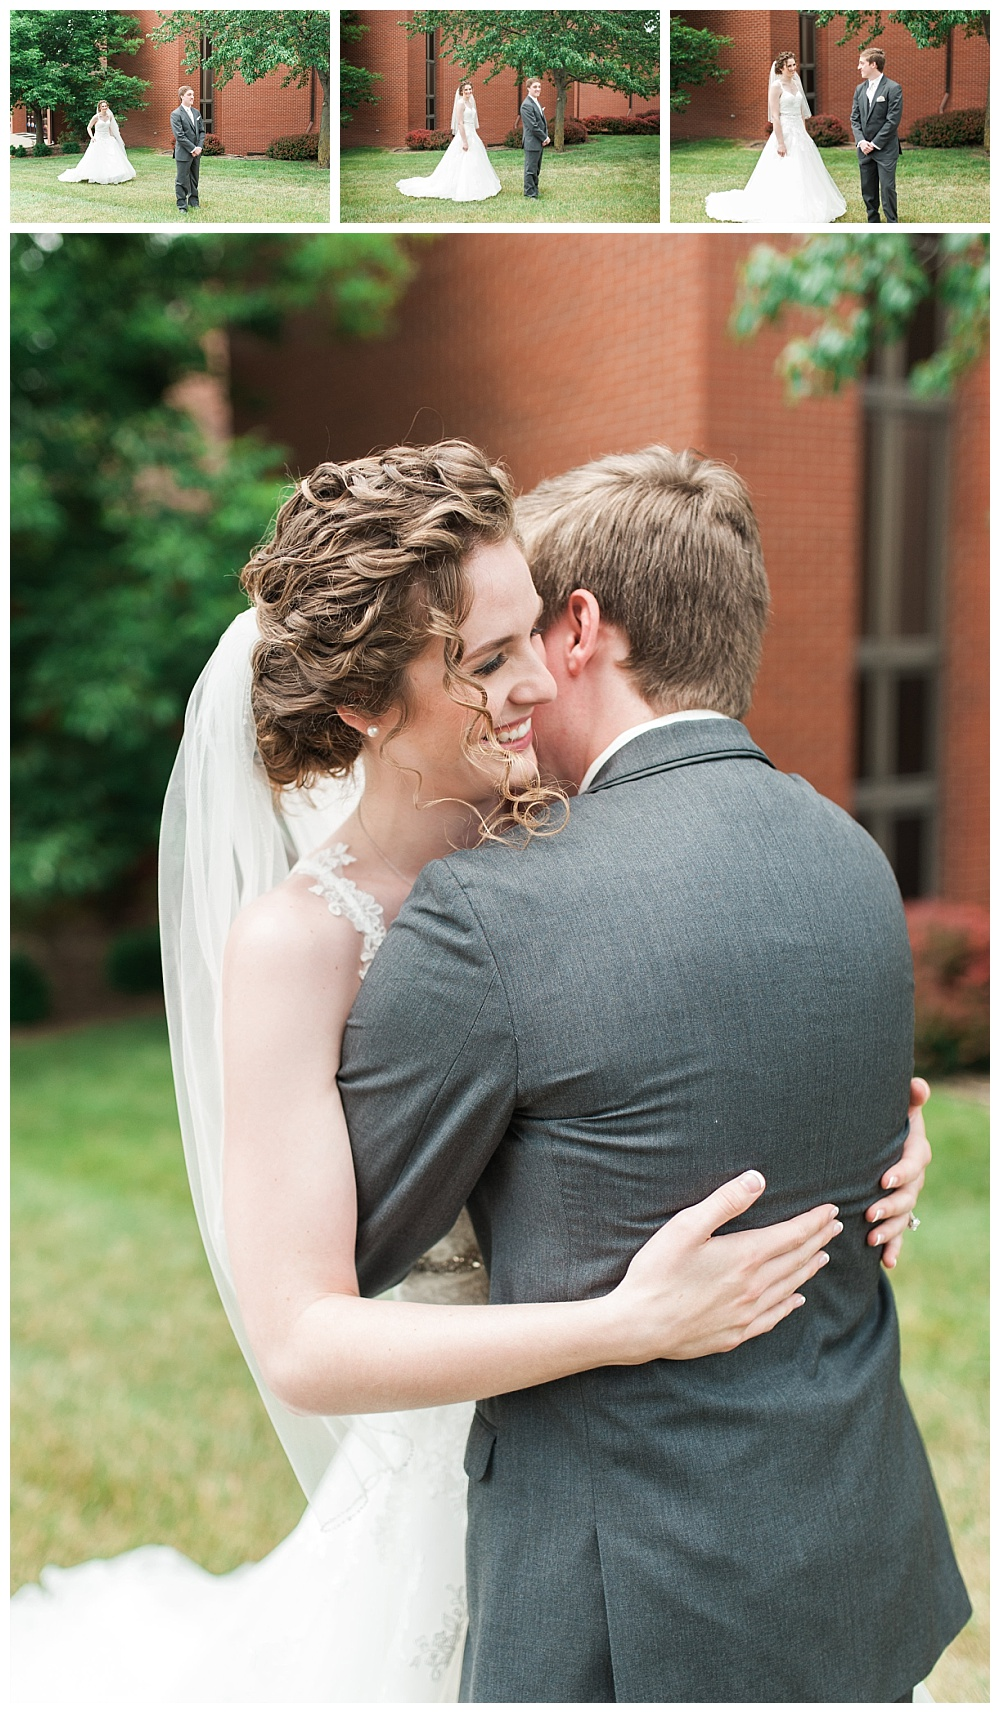 Stephanie Marie PhotographyMeredith Drive Reformed Church Des Moines Iowa City Wedding Photographer Keaton Alyssa 10